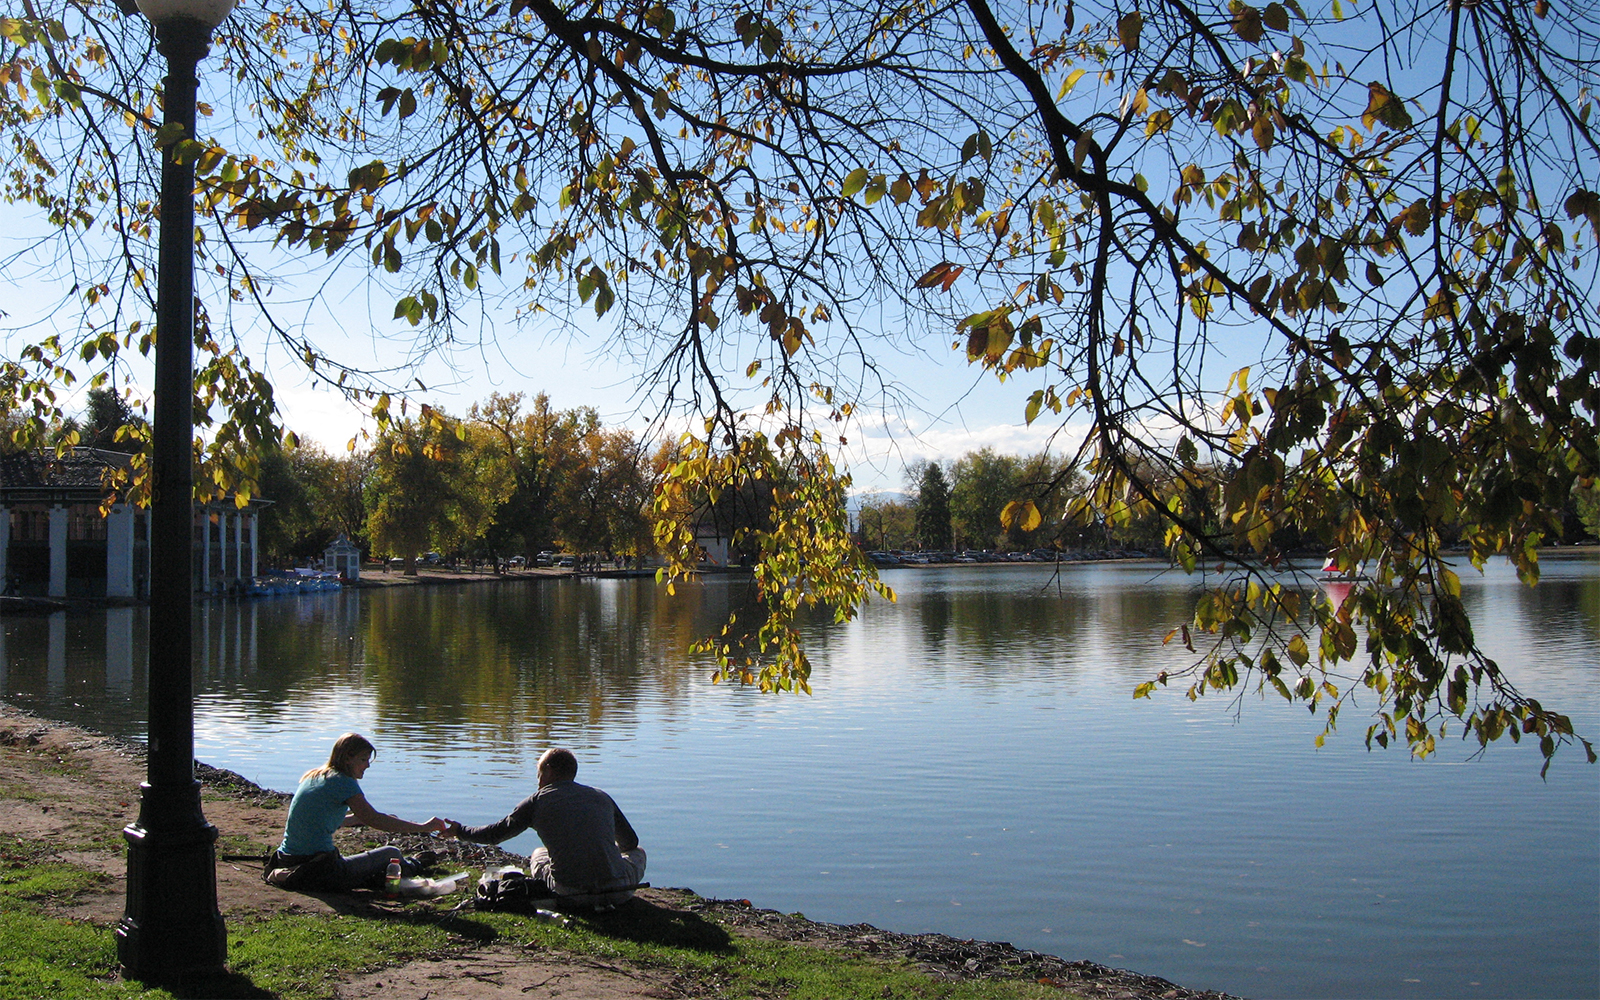 America's Best Cities for Picnics: No. 20 Denver